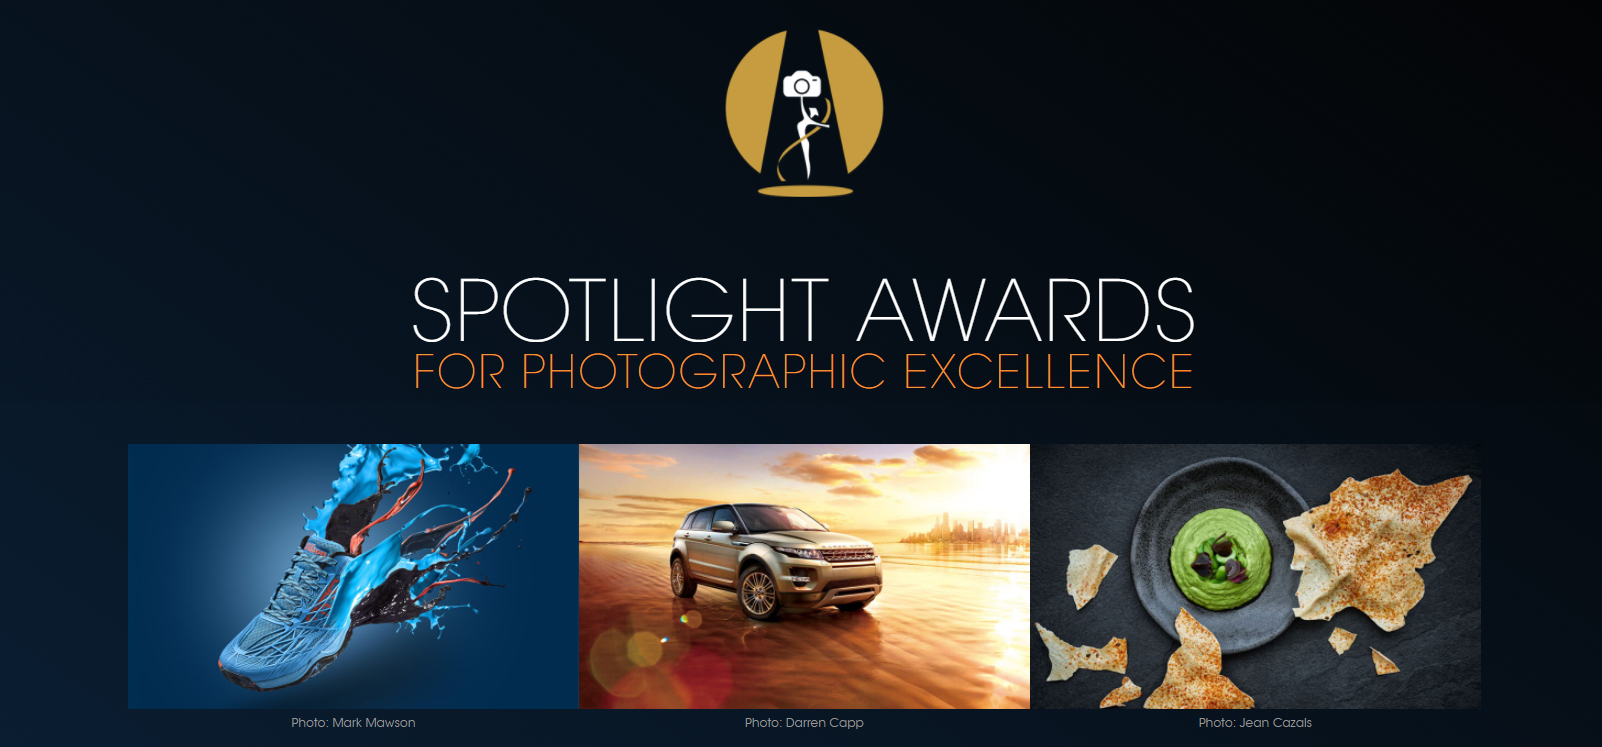 Production Paradise launches Spotlight Awards for Photographic Excellence with prestigious international judge panel